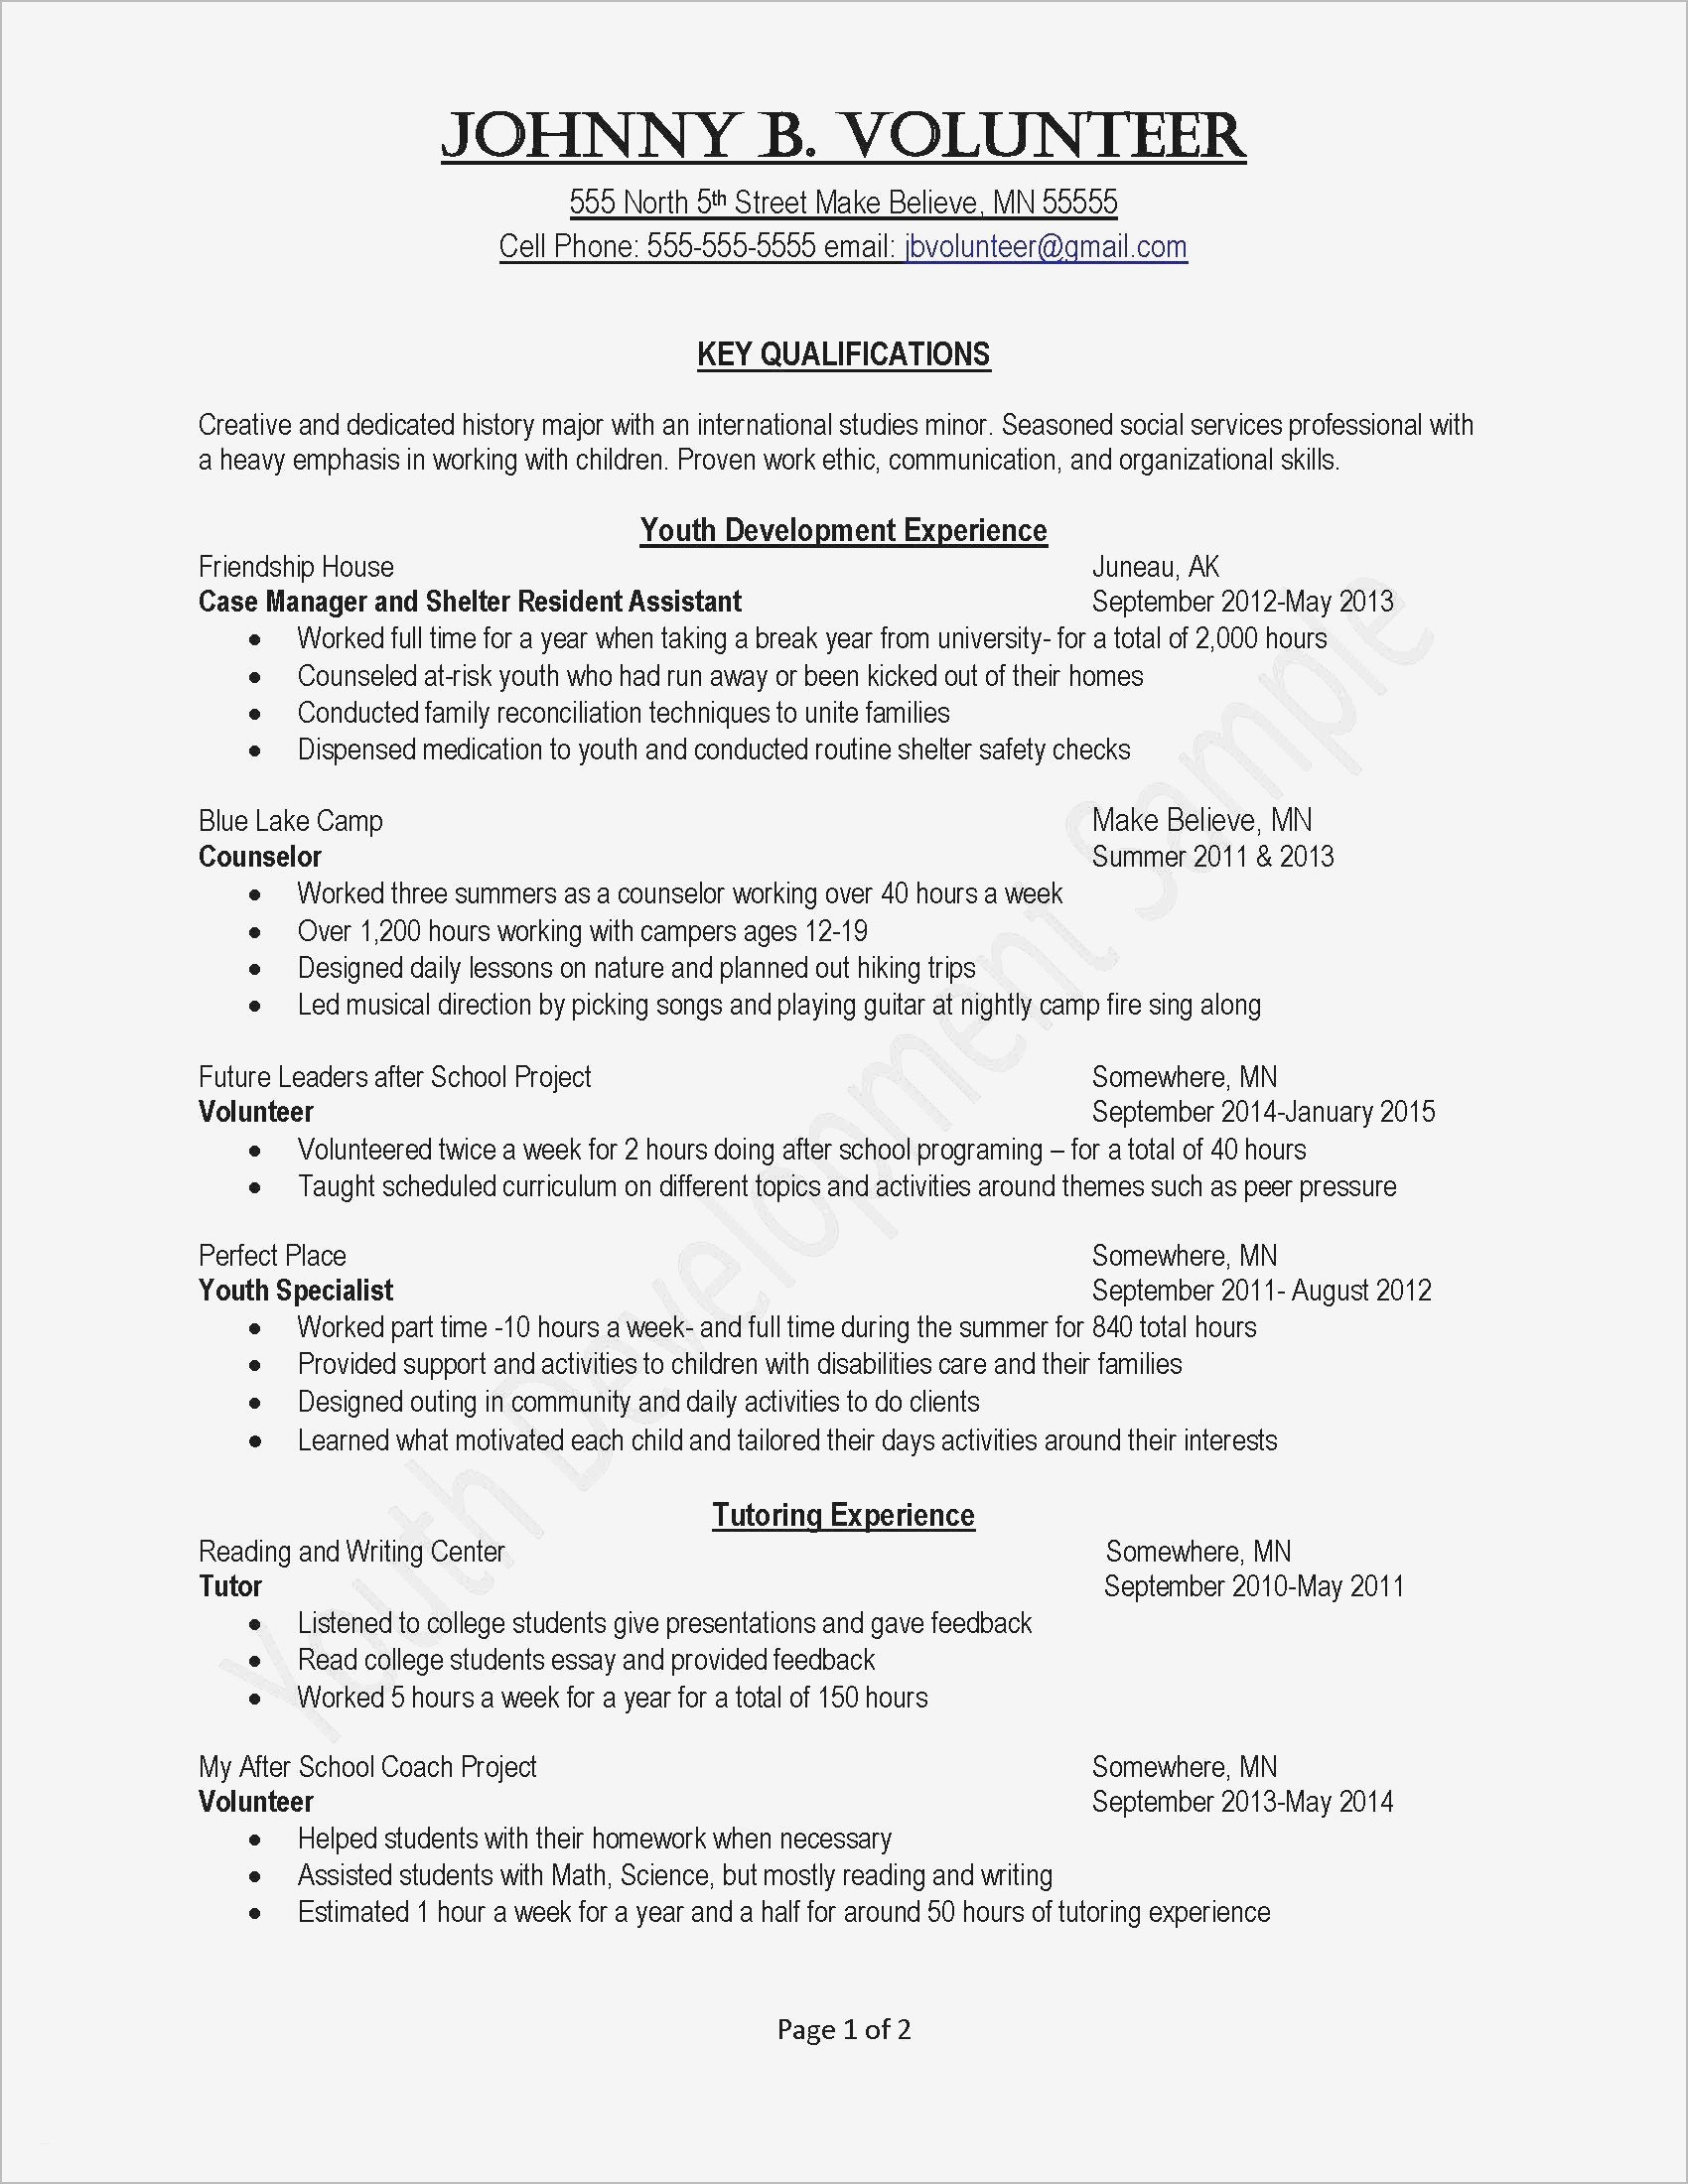 Job Cover Letter Template - Activities Resume Template Valid Job Fer Letter Template Us Copy Od